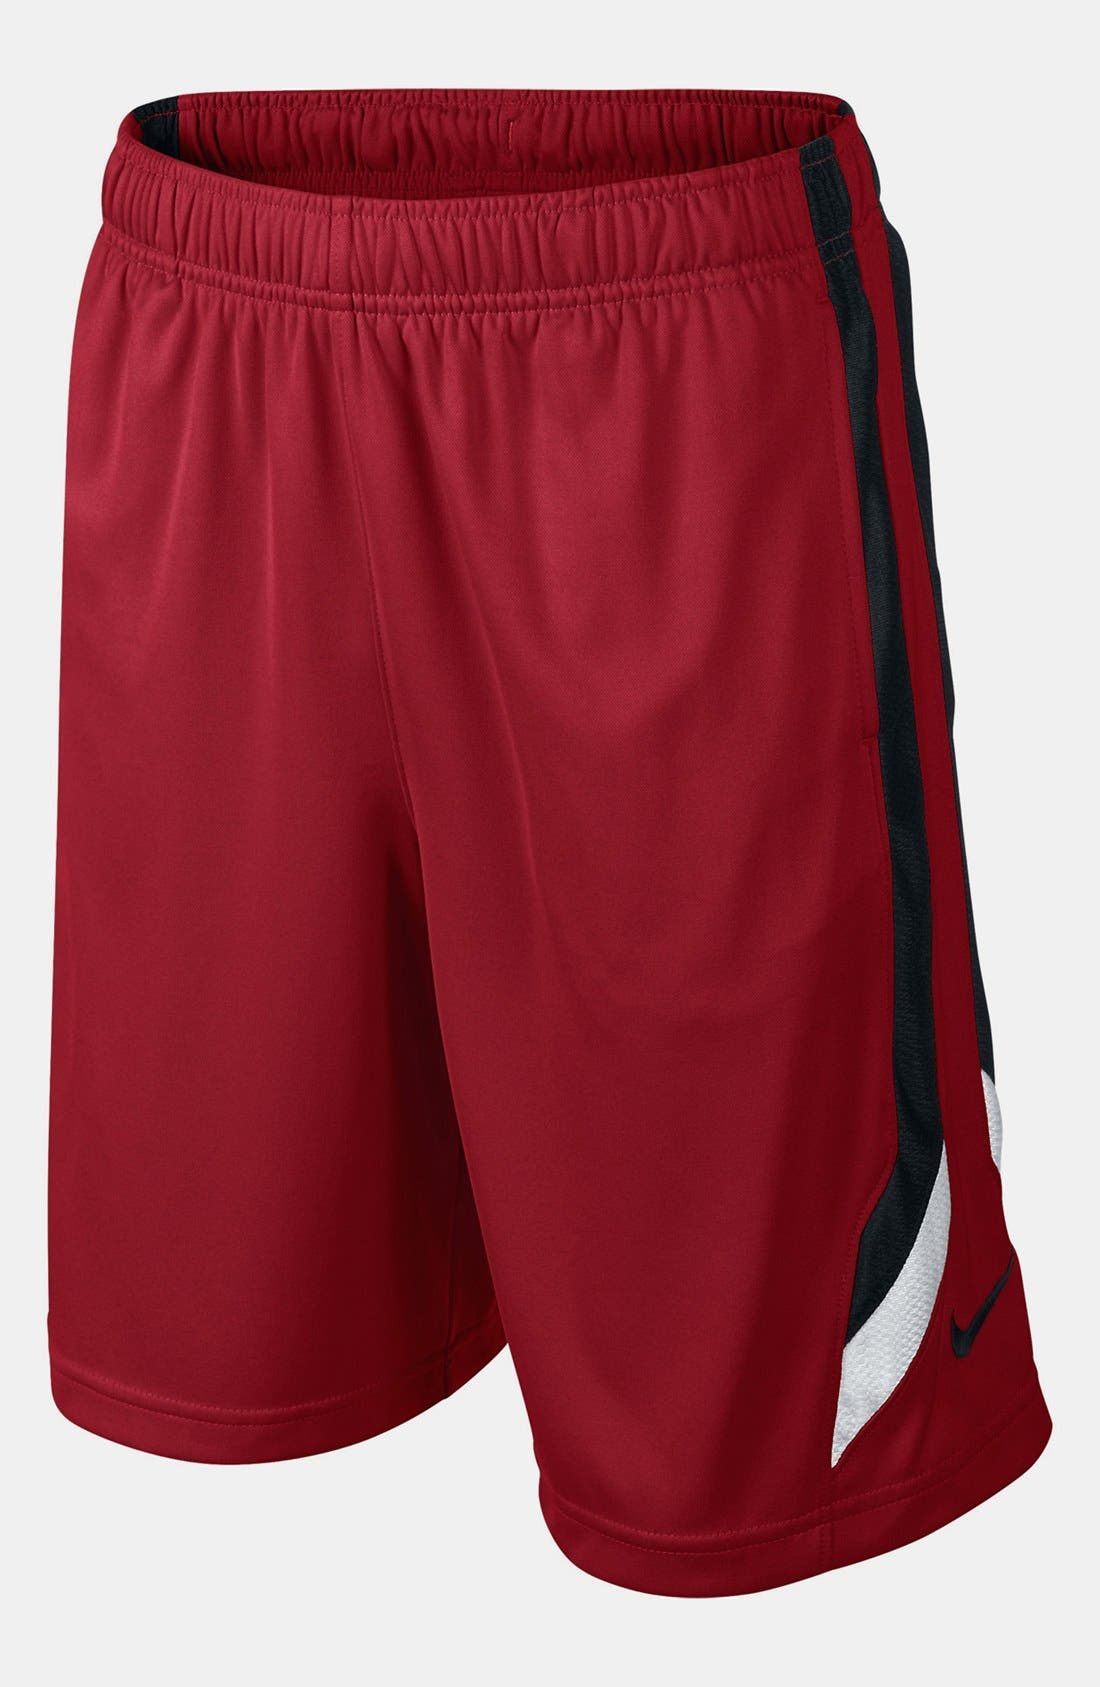 Main Image - Nike 'Super Fast' Dri-FIT Basketball Shorts (Big Boys)